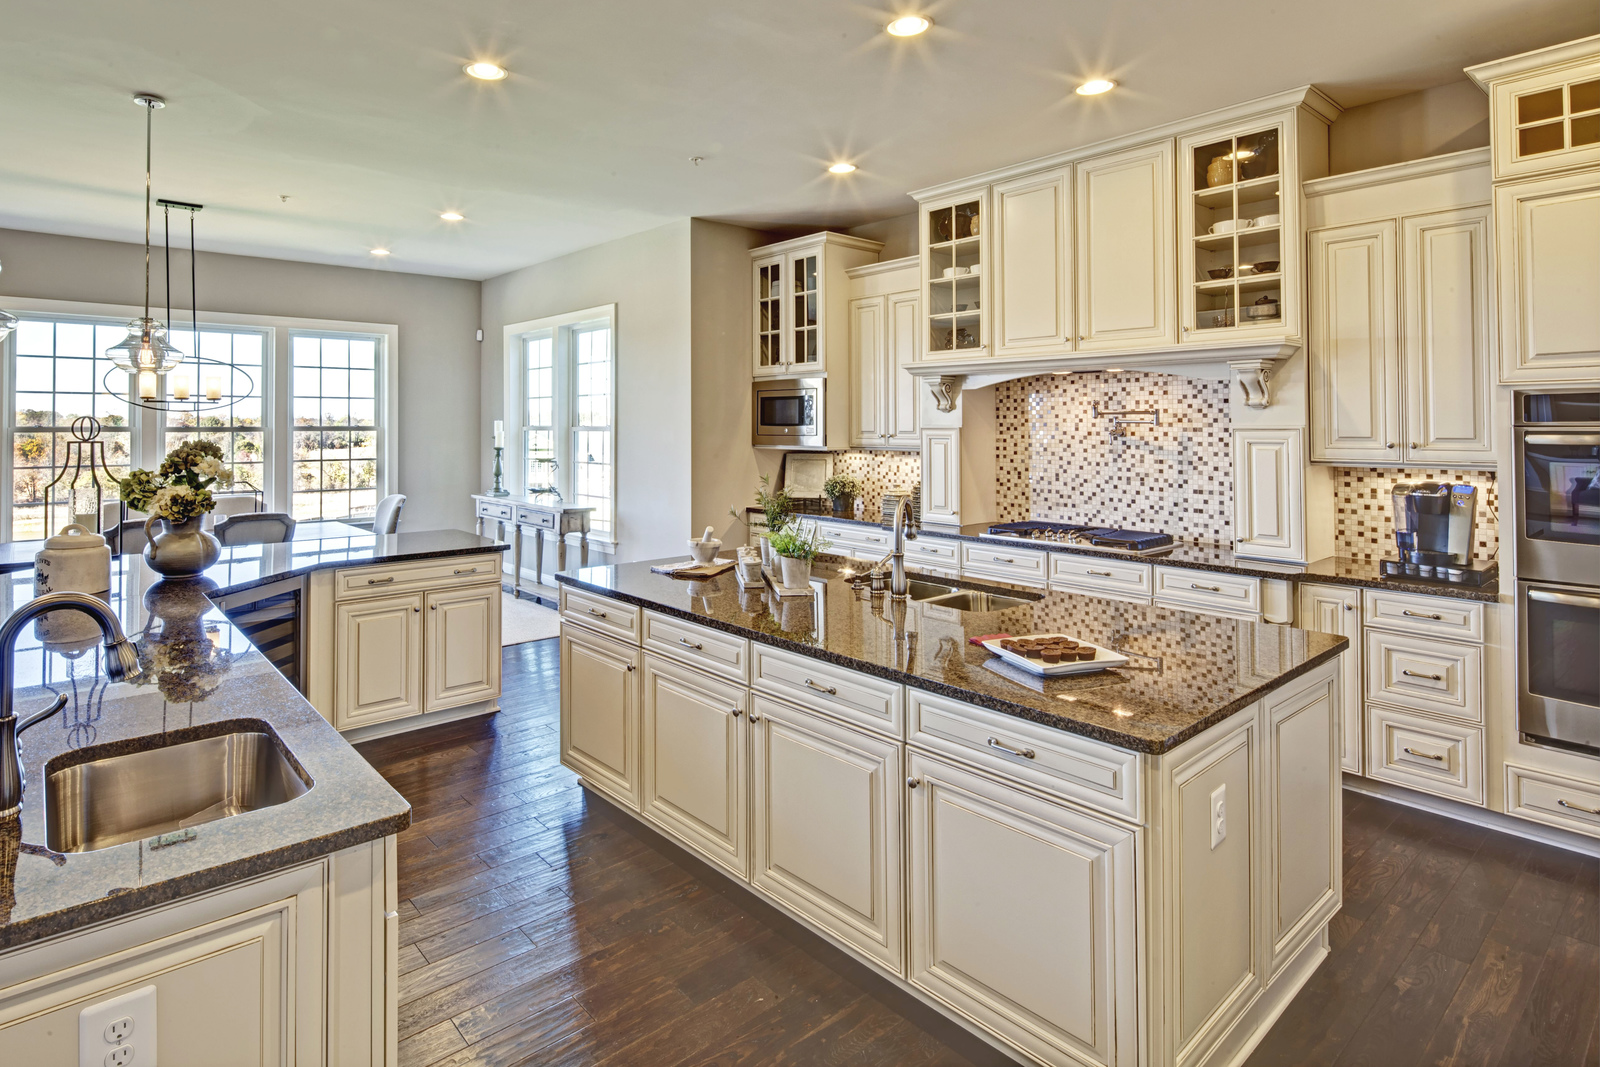 Maple cabinetry, granite countertops, stainless steel appliances and hardwood floors are all included - have the luxury kitchen of your dreams!